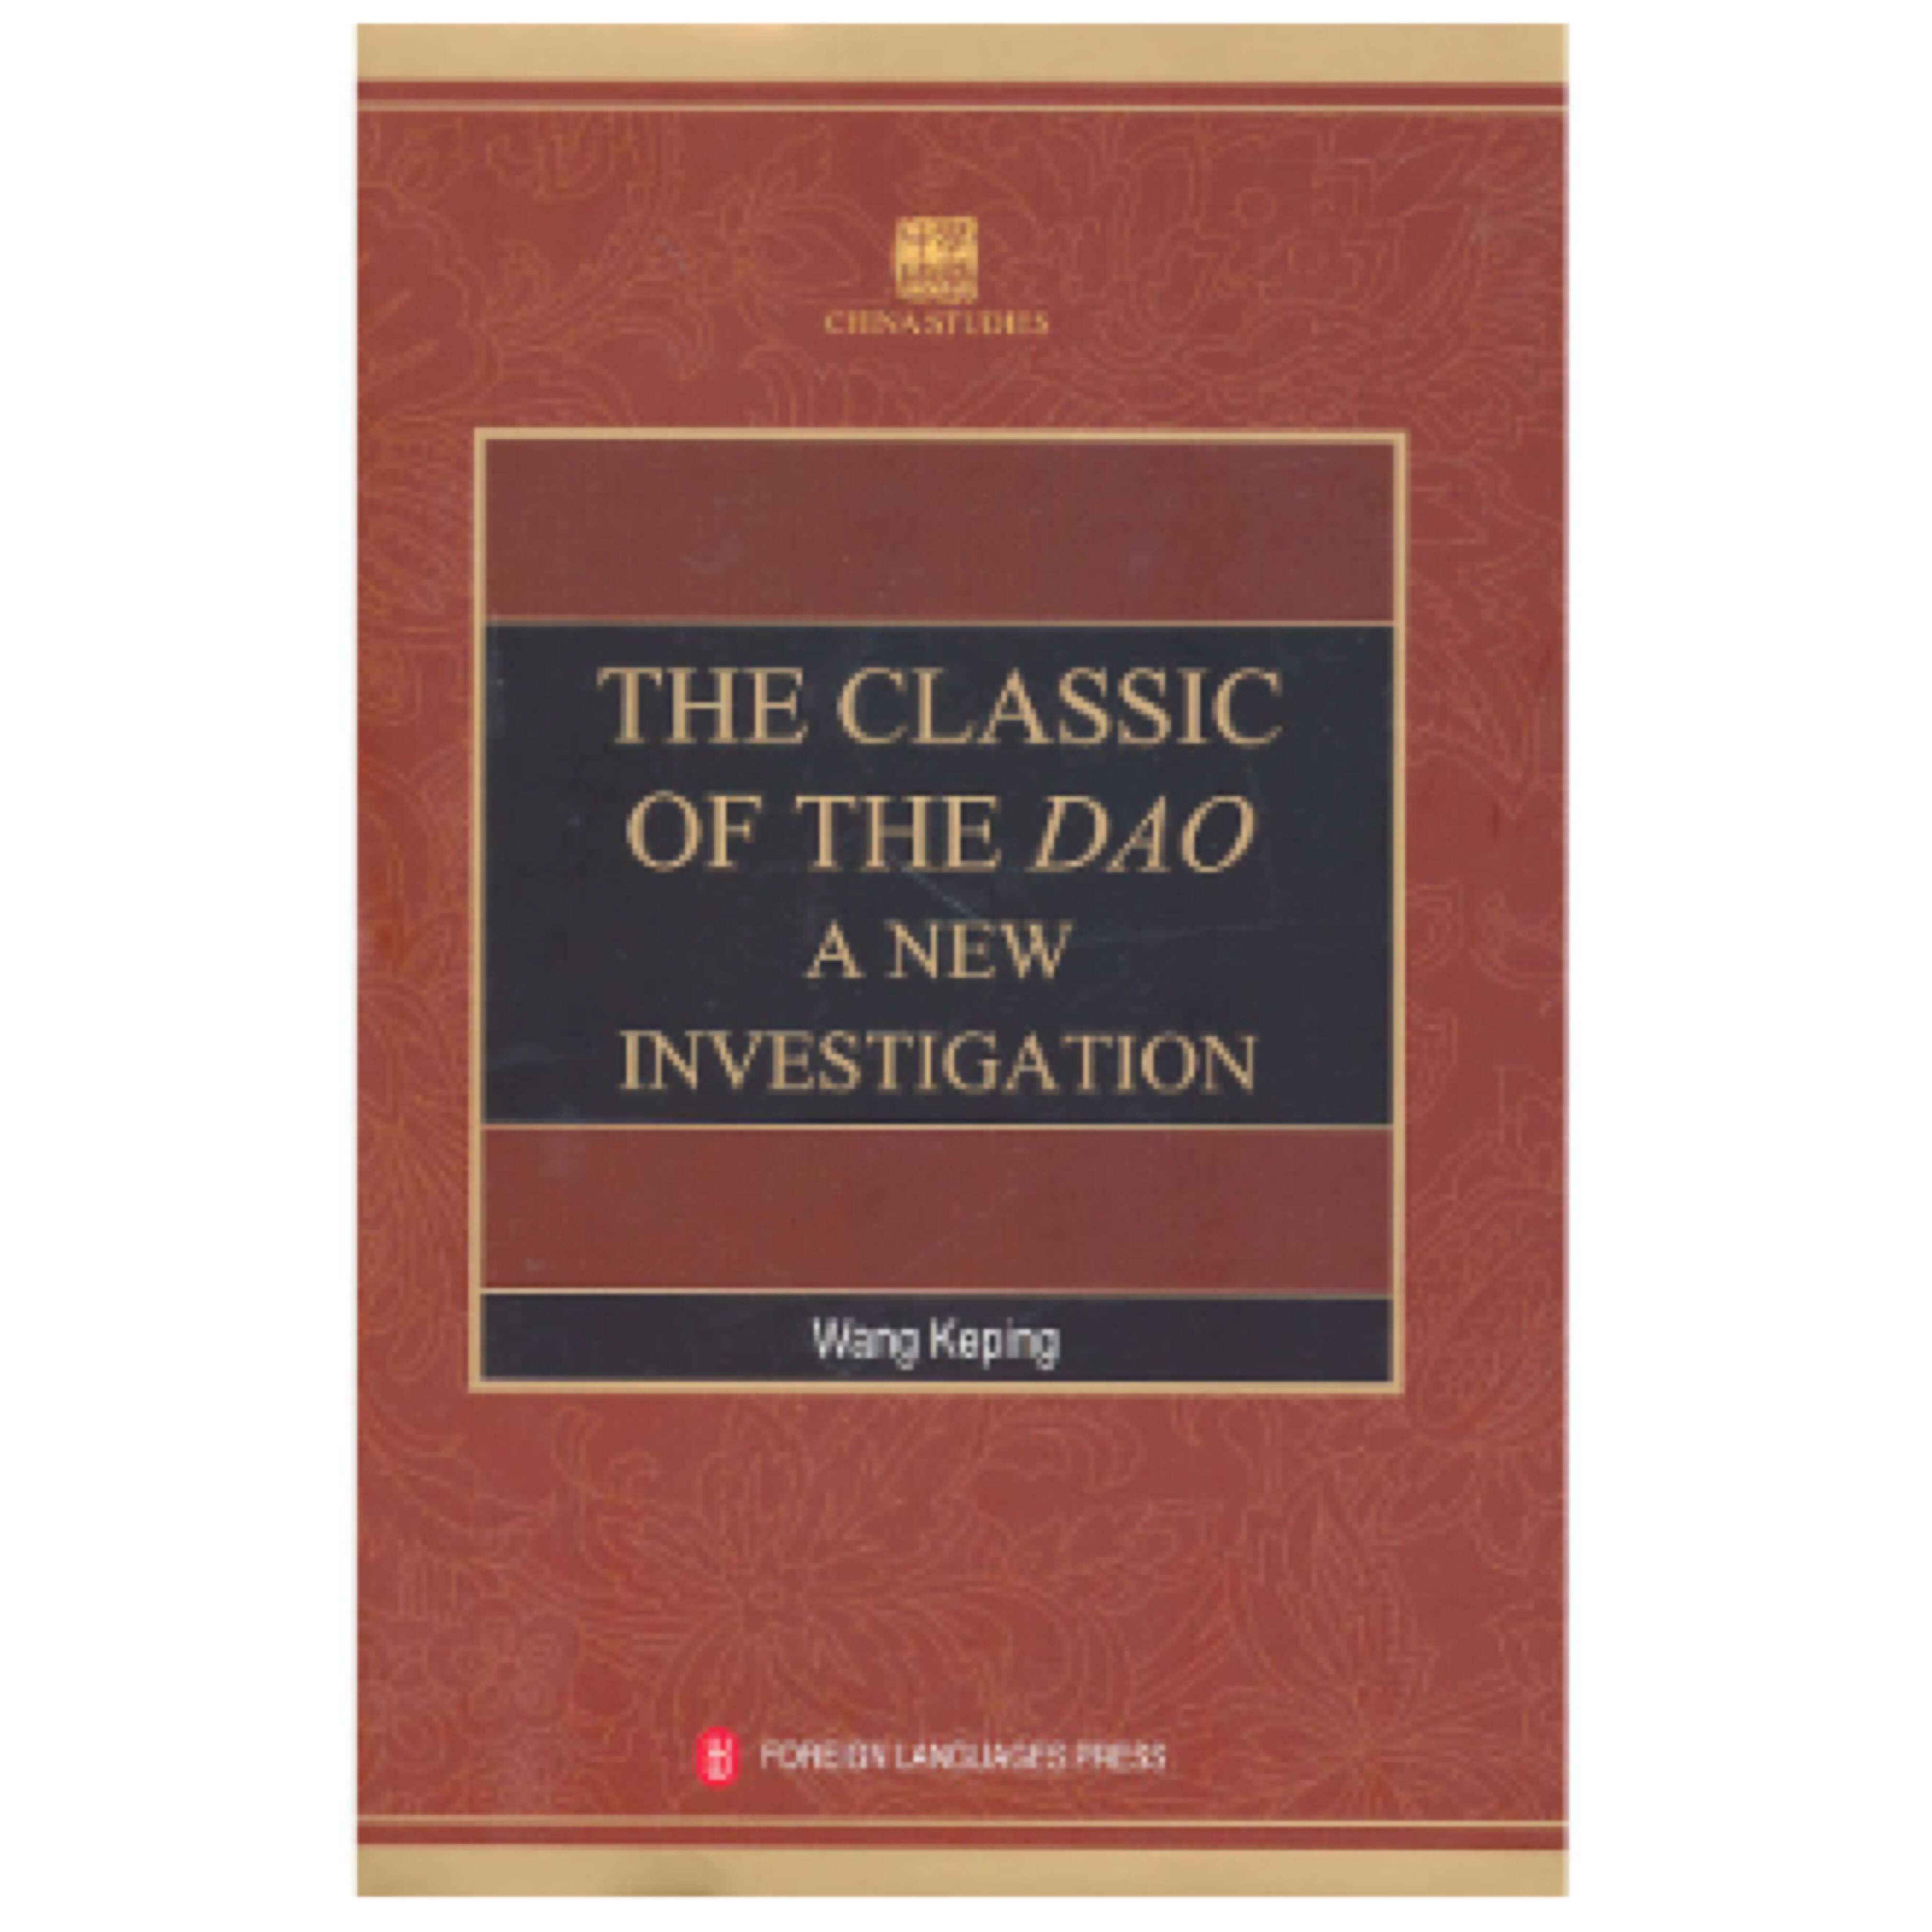 The Classic Of The Dao A New Investigation Language English Paper Book Keep On Lifelong Learning As Long As You Live-175